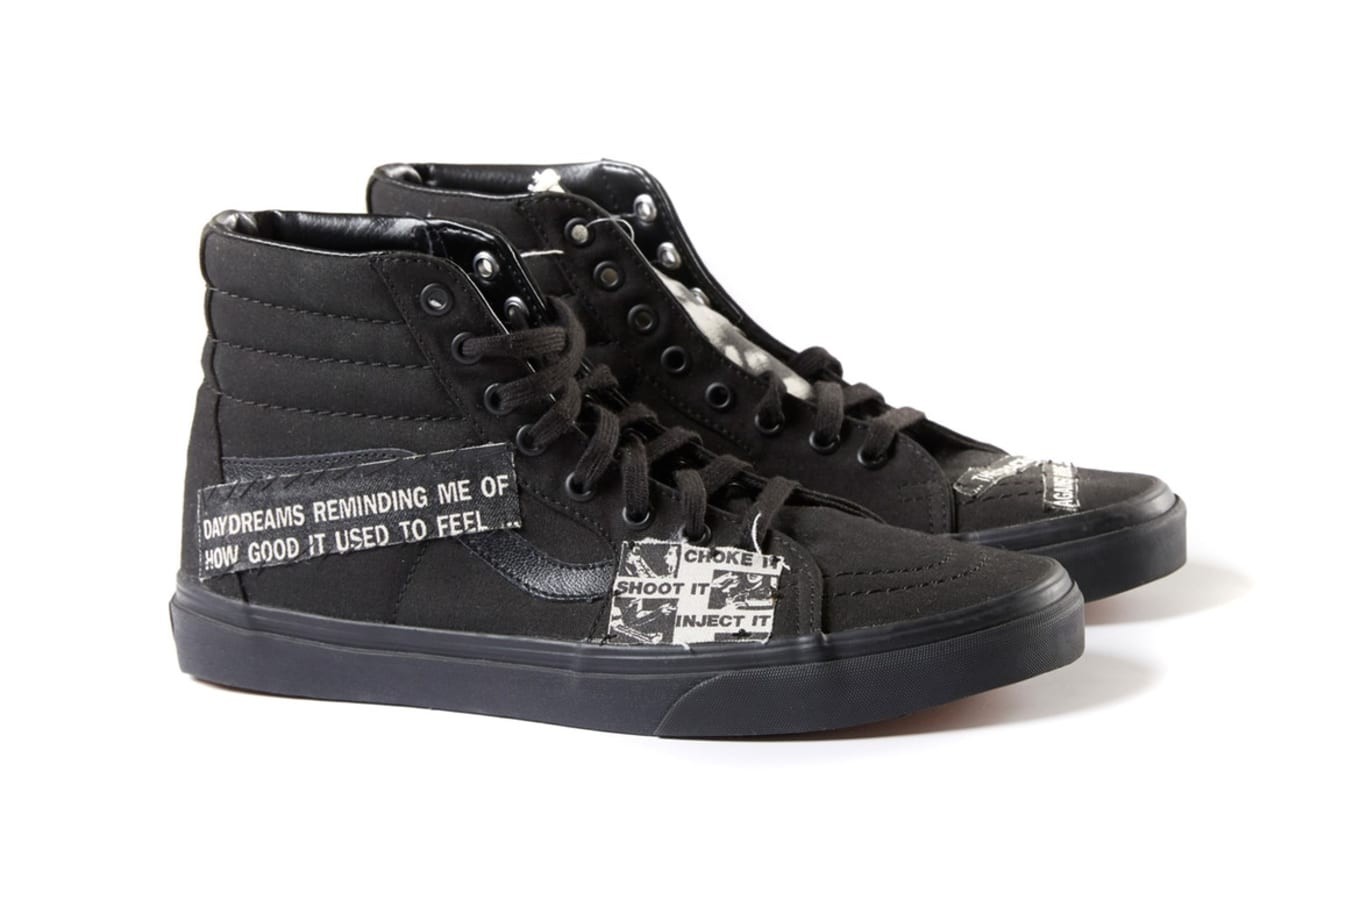 59152a01c7 Vans x Enfants Riches Déprimés Vans-Sk8 Hi Collaboration Release ...